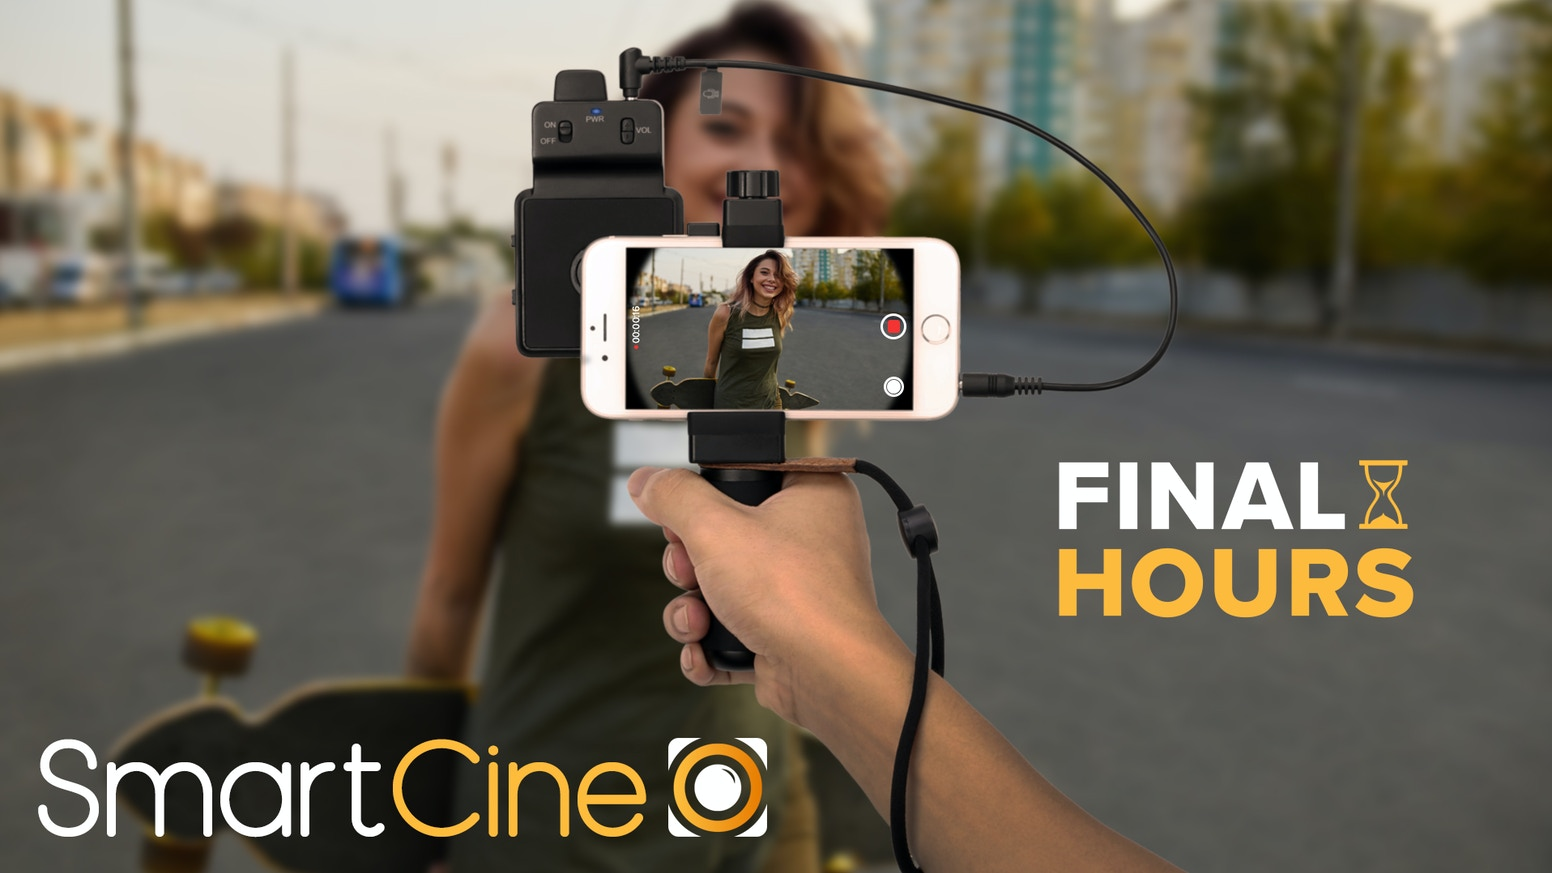 An all-in-one video rig for any smartphone. A pro stereo microphone, LED light ring and set of wide-angle lenses in one compact package.